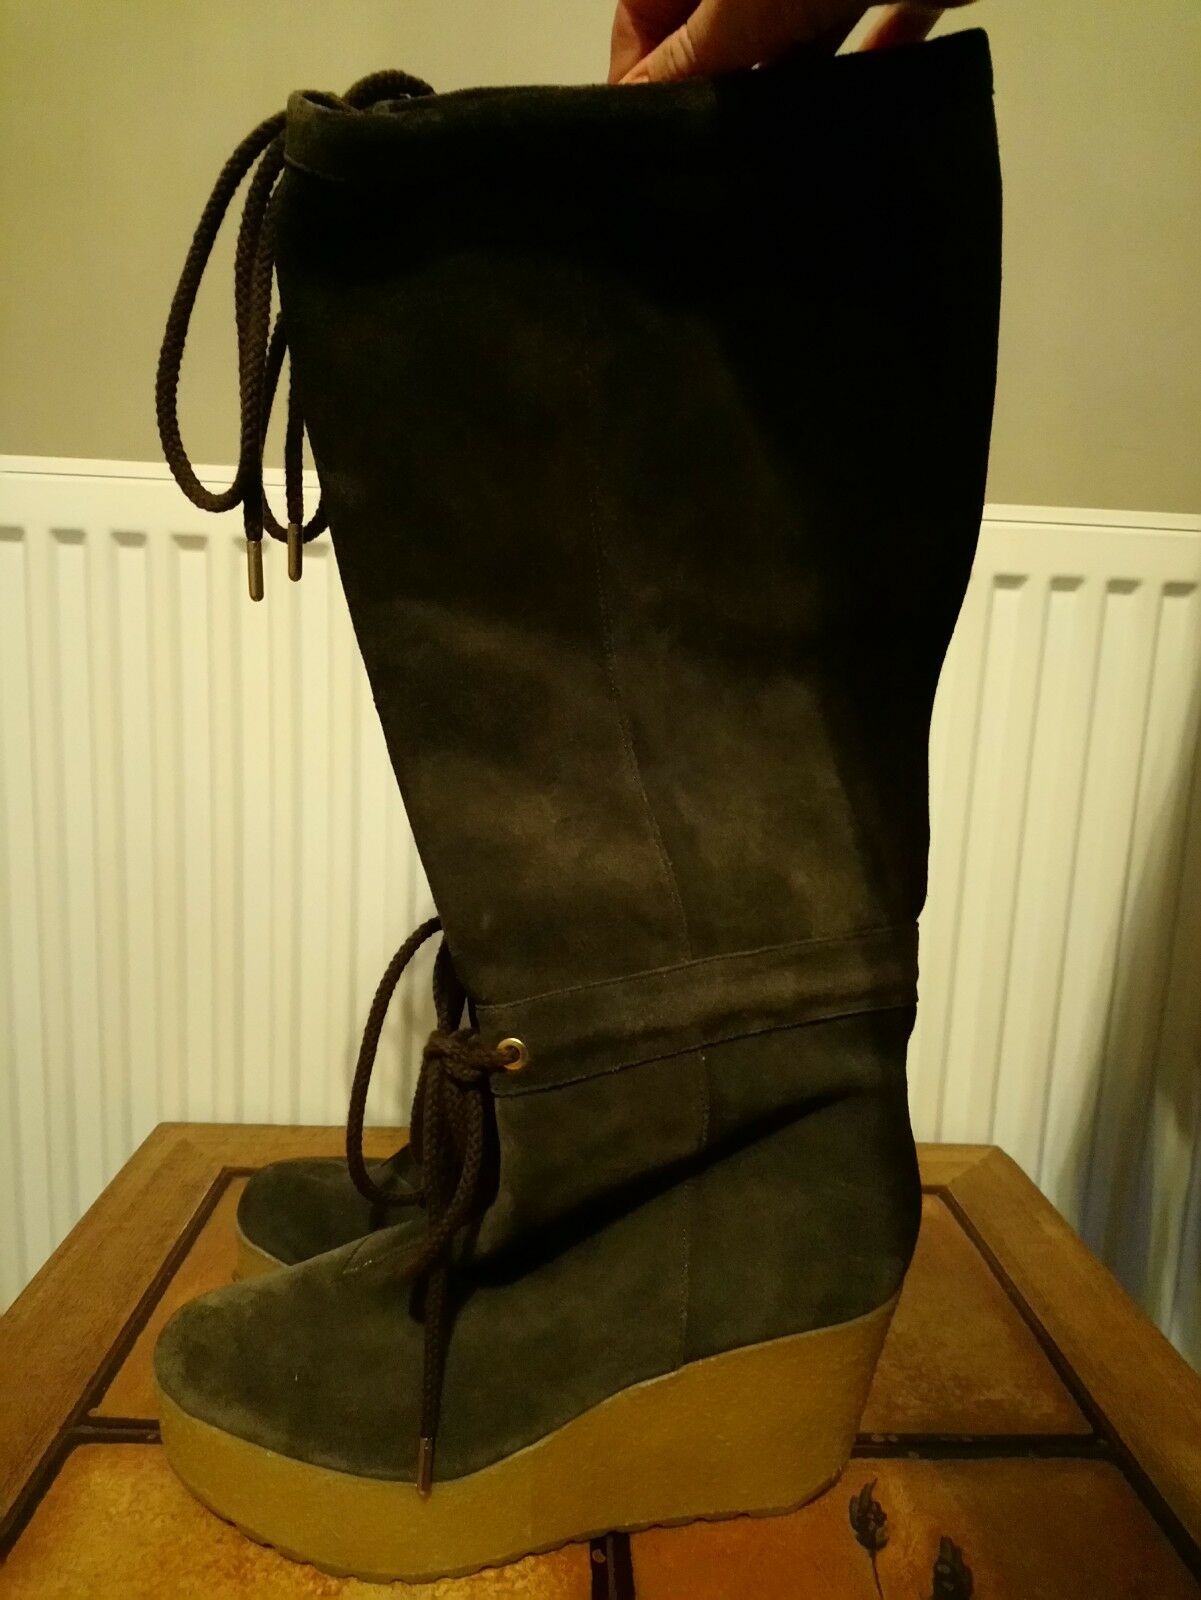 ROCKPORT CEDRA SCRUNCHED Tall GREY BOOTS  SIZE UK 6 EUR 39